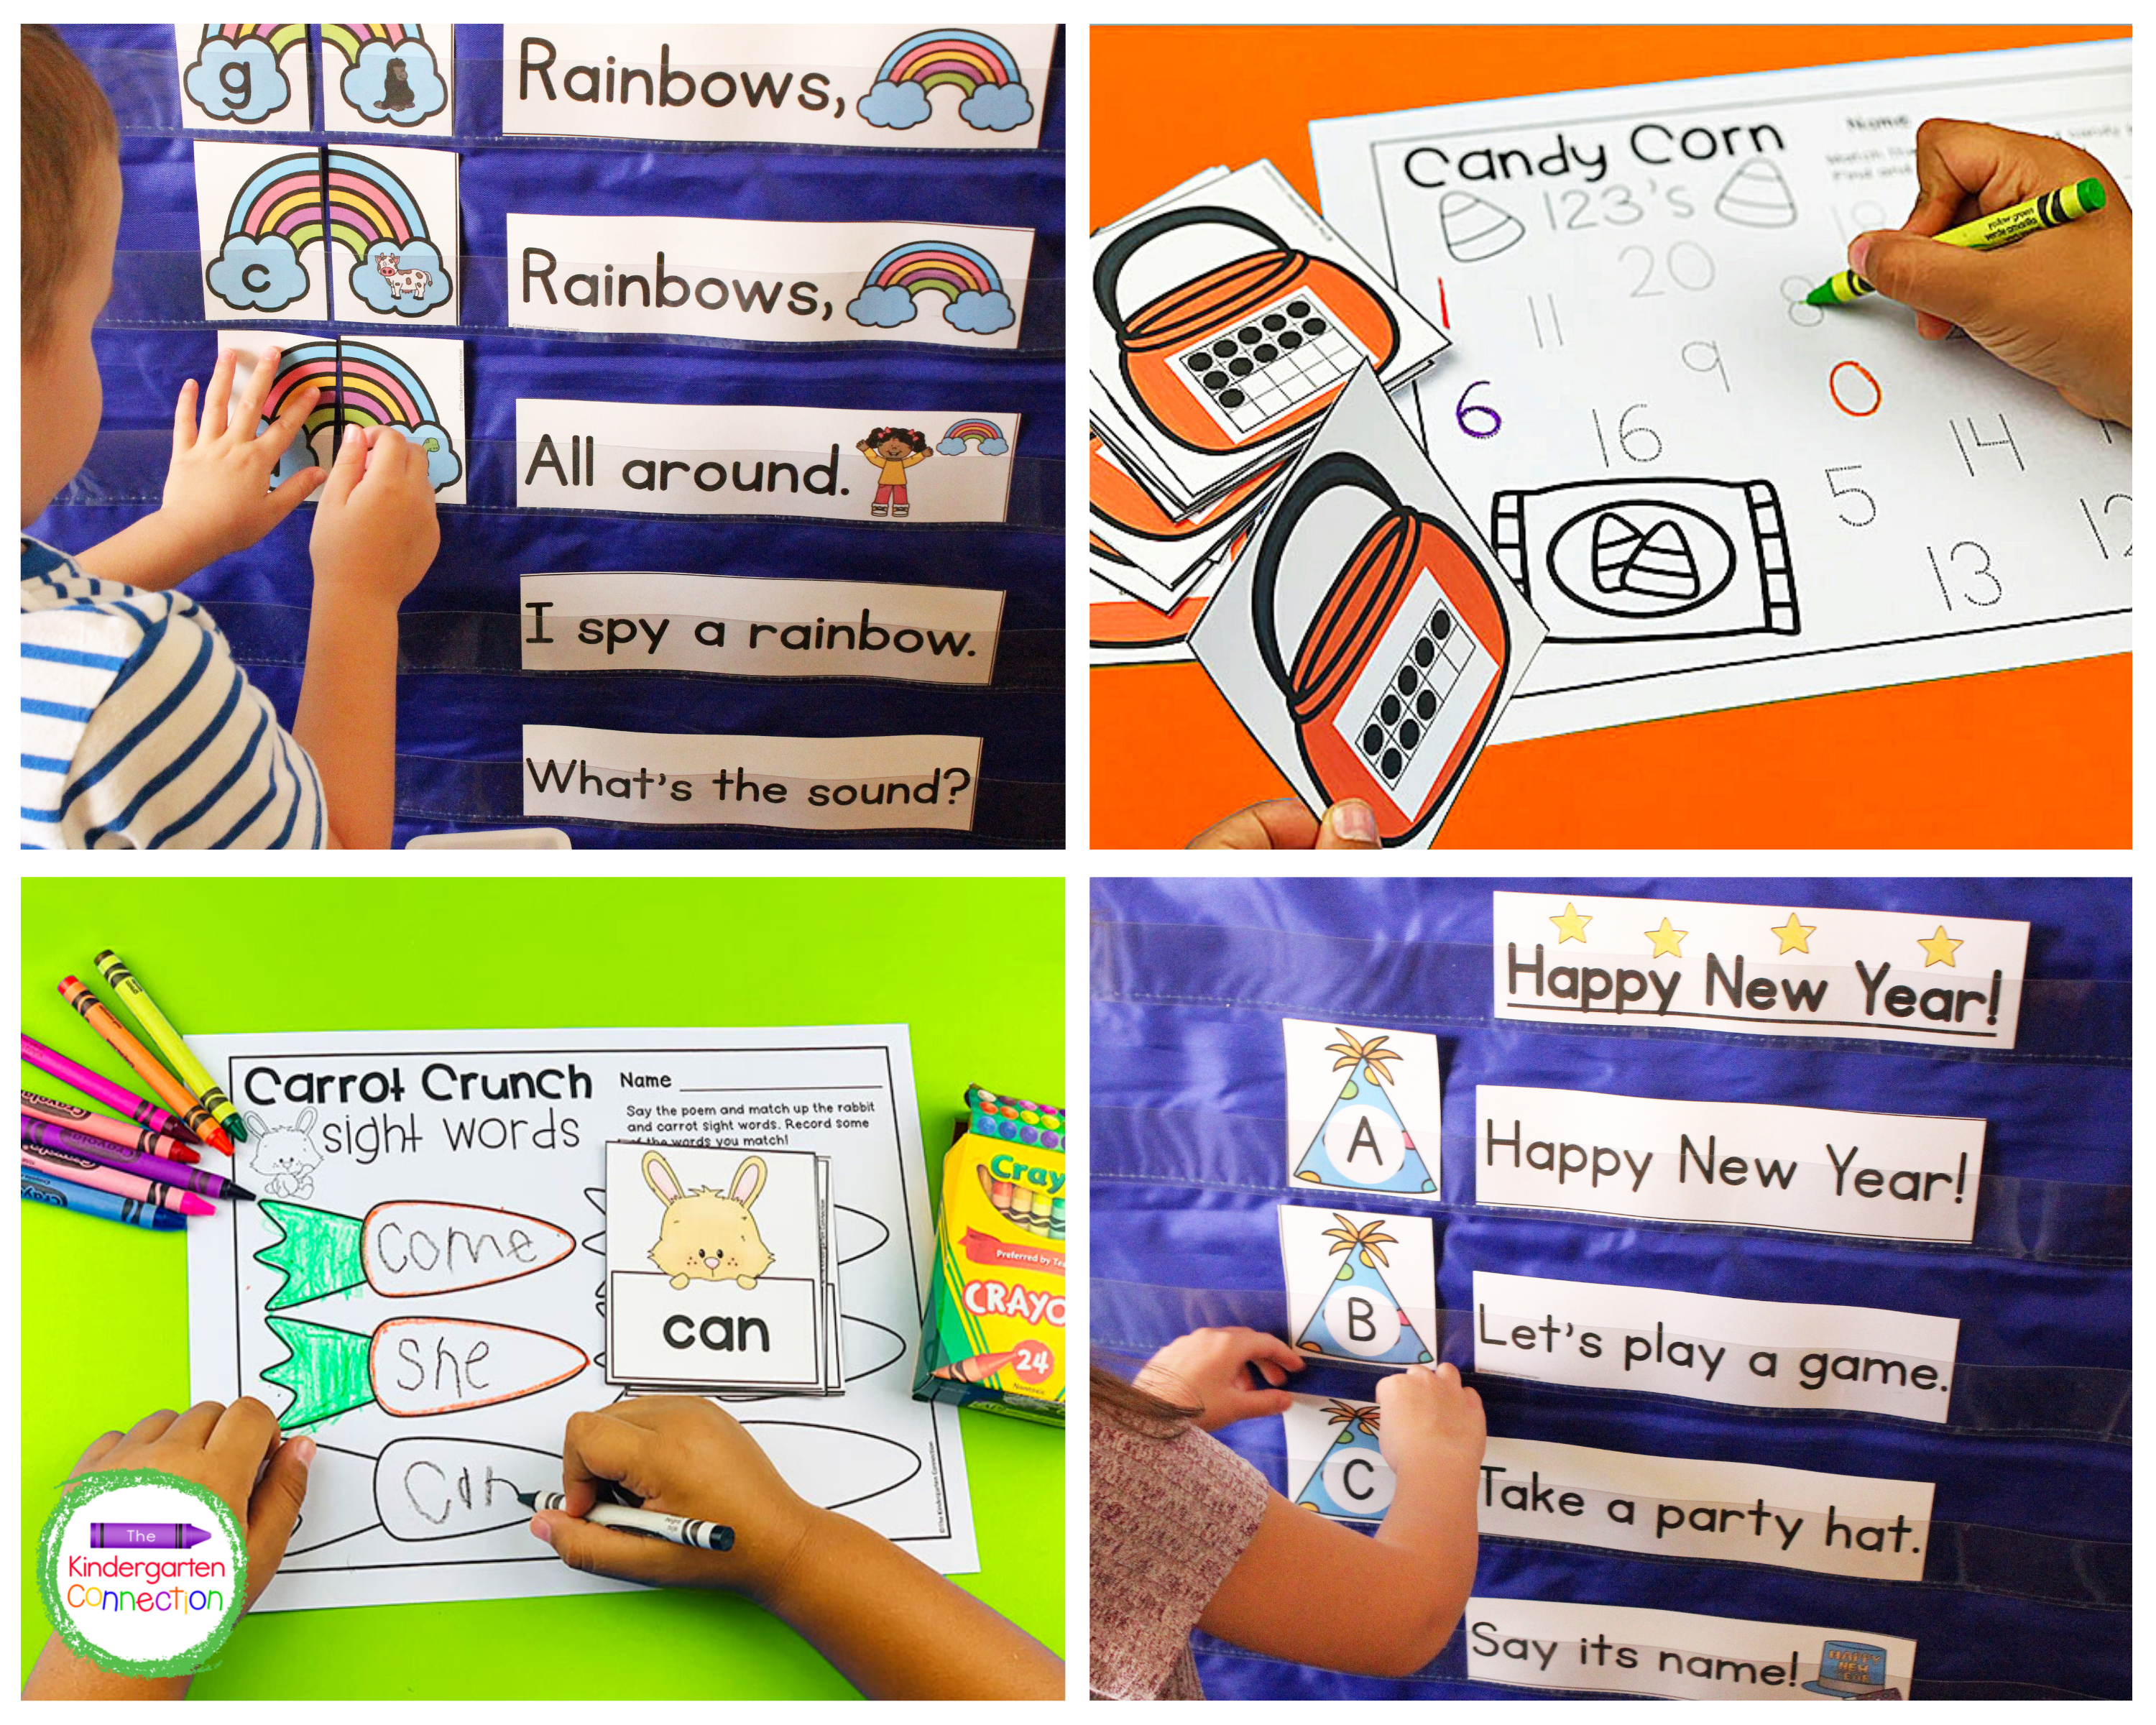 Use these pocket chart activities and chants to practice sight words, numbers recognition, counting, and more.